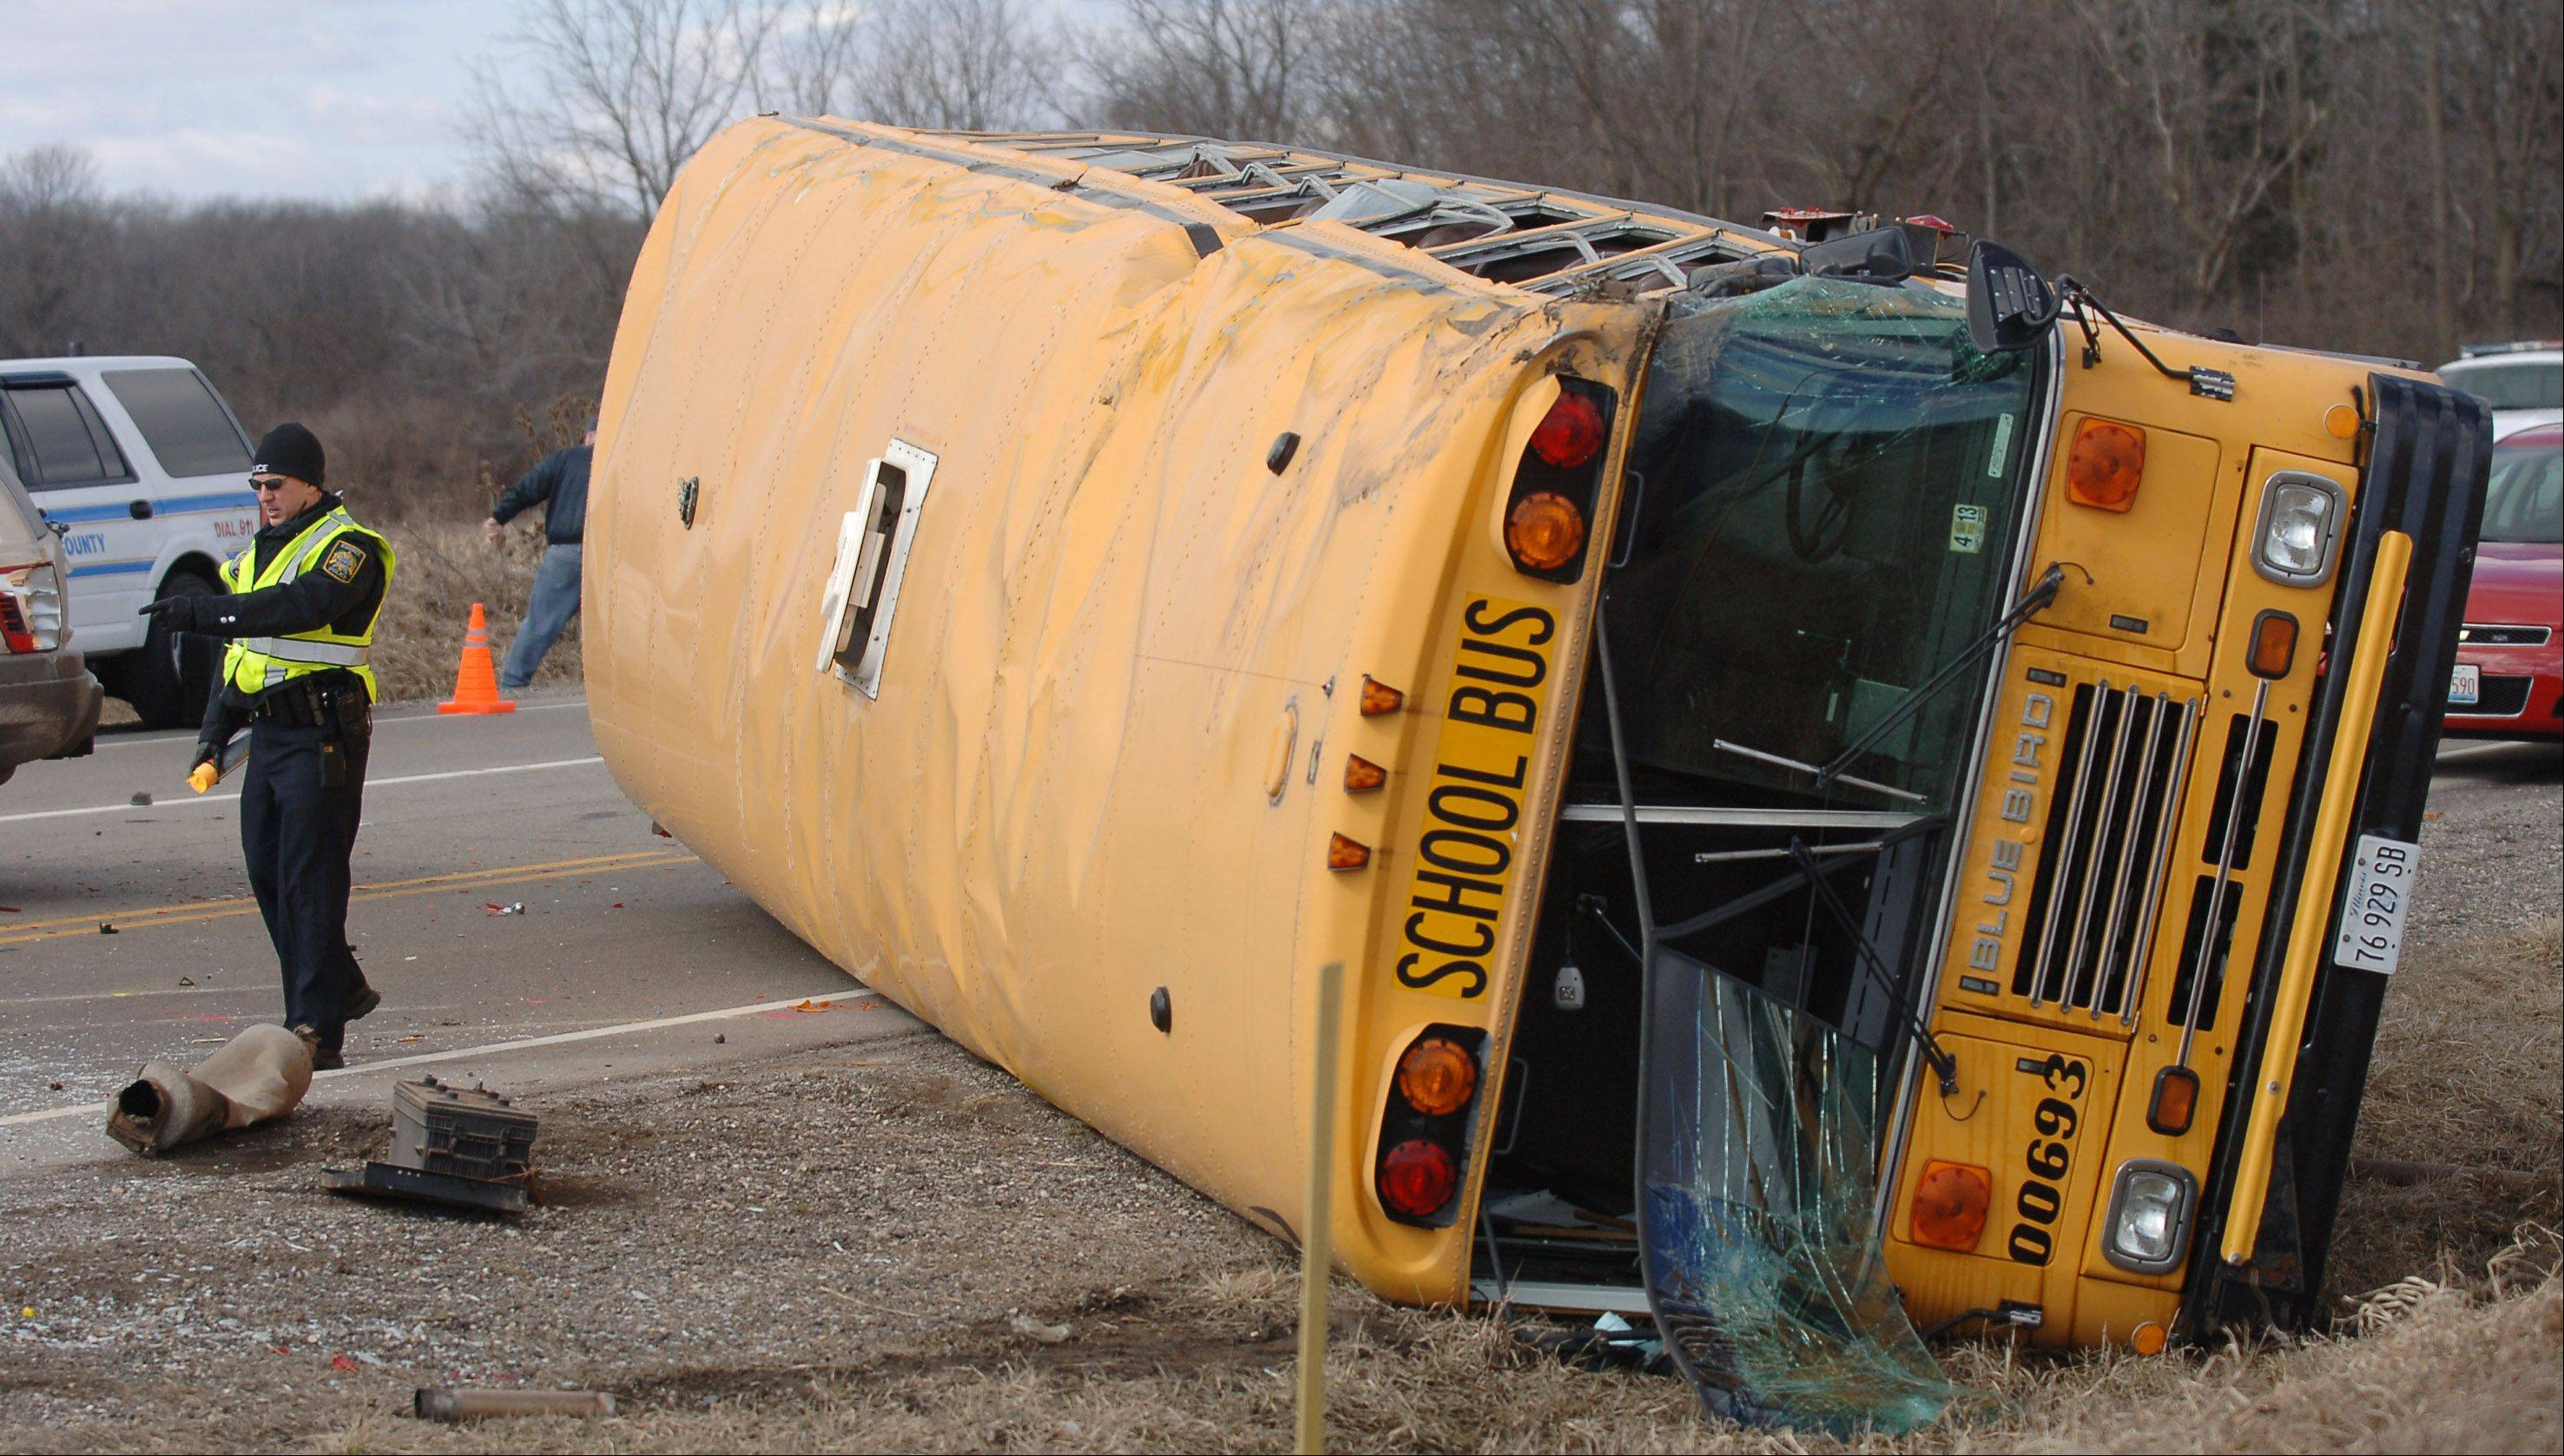 Police: Jeep struck school bus in fatal crash